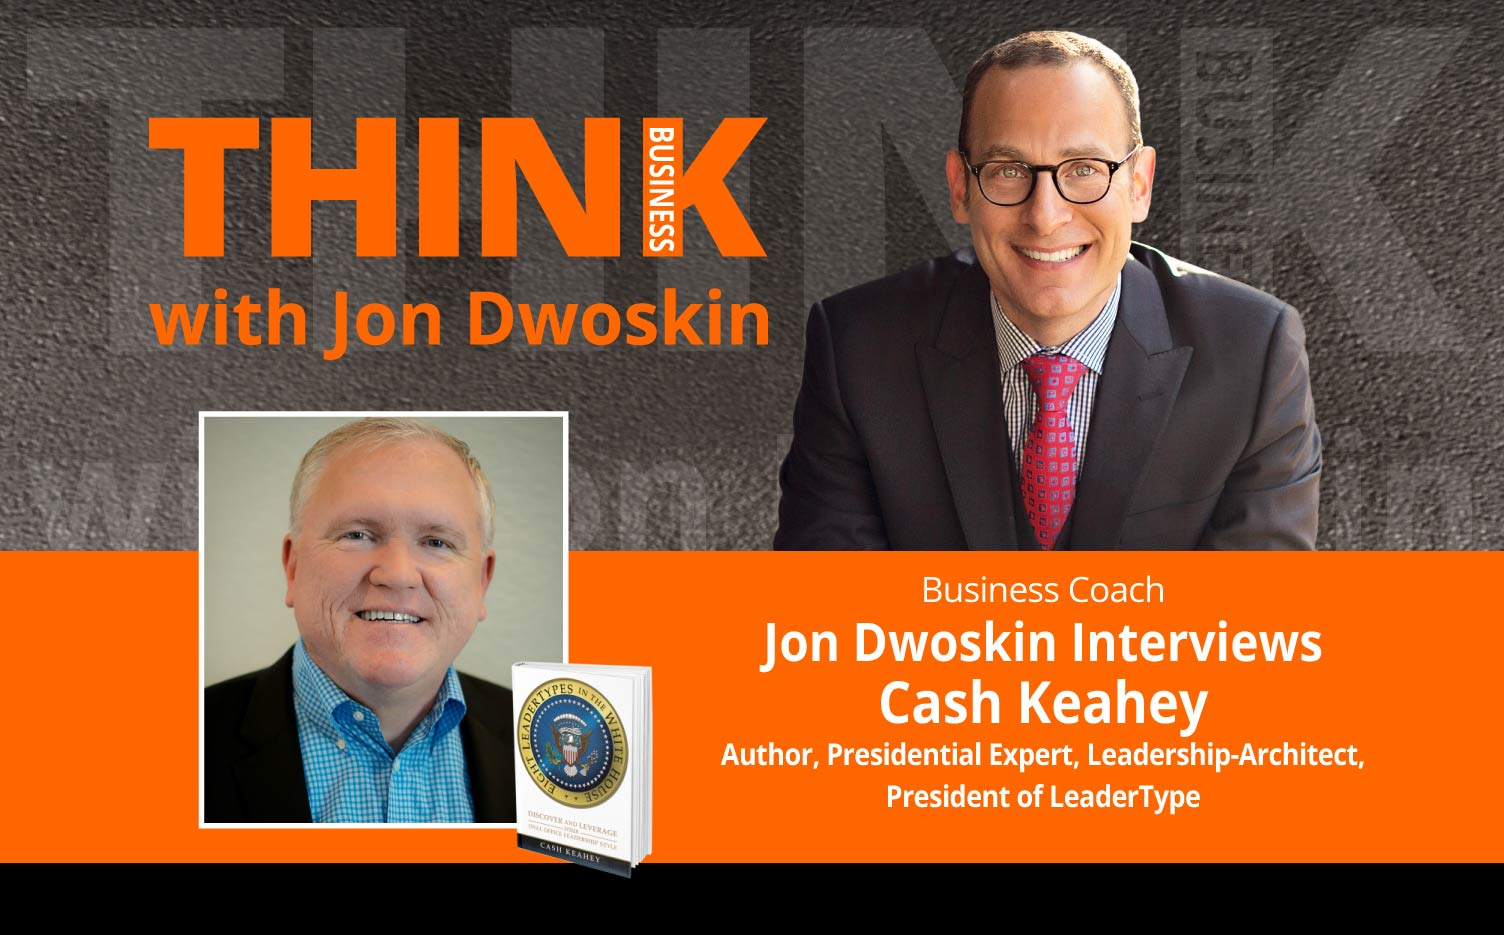 THINK Business Podcast: Jon Dwoskin Interviews Cash Keahey, Author, Presidential Expert, Leadership-Architect, President of LeaderType